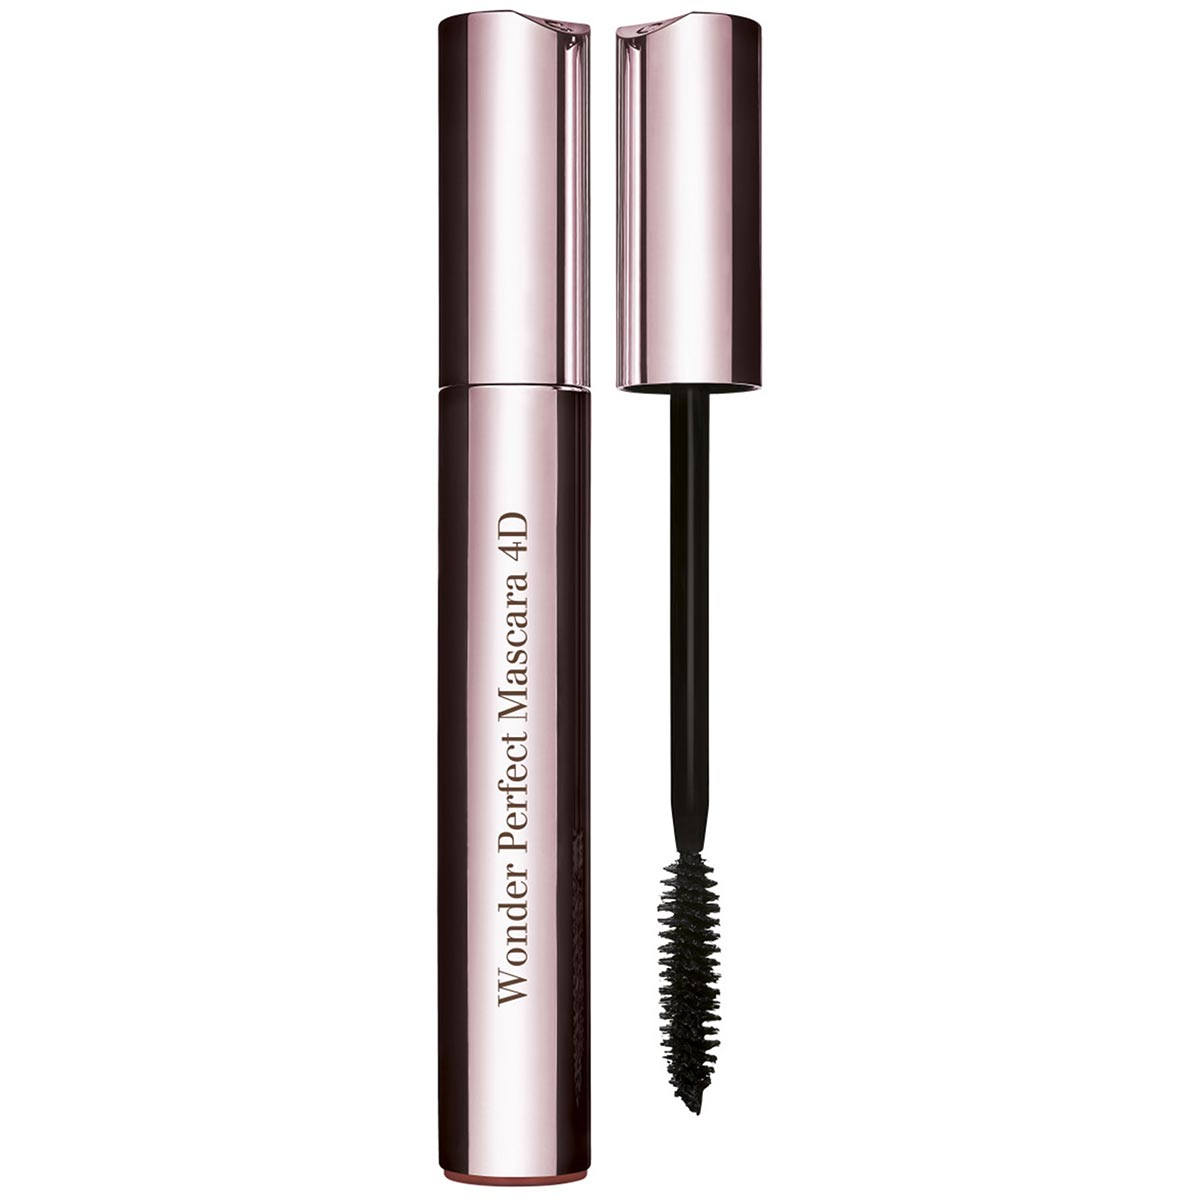 Mascara Wonder Perfect 4D - CLARINS